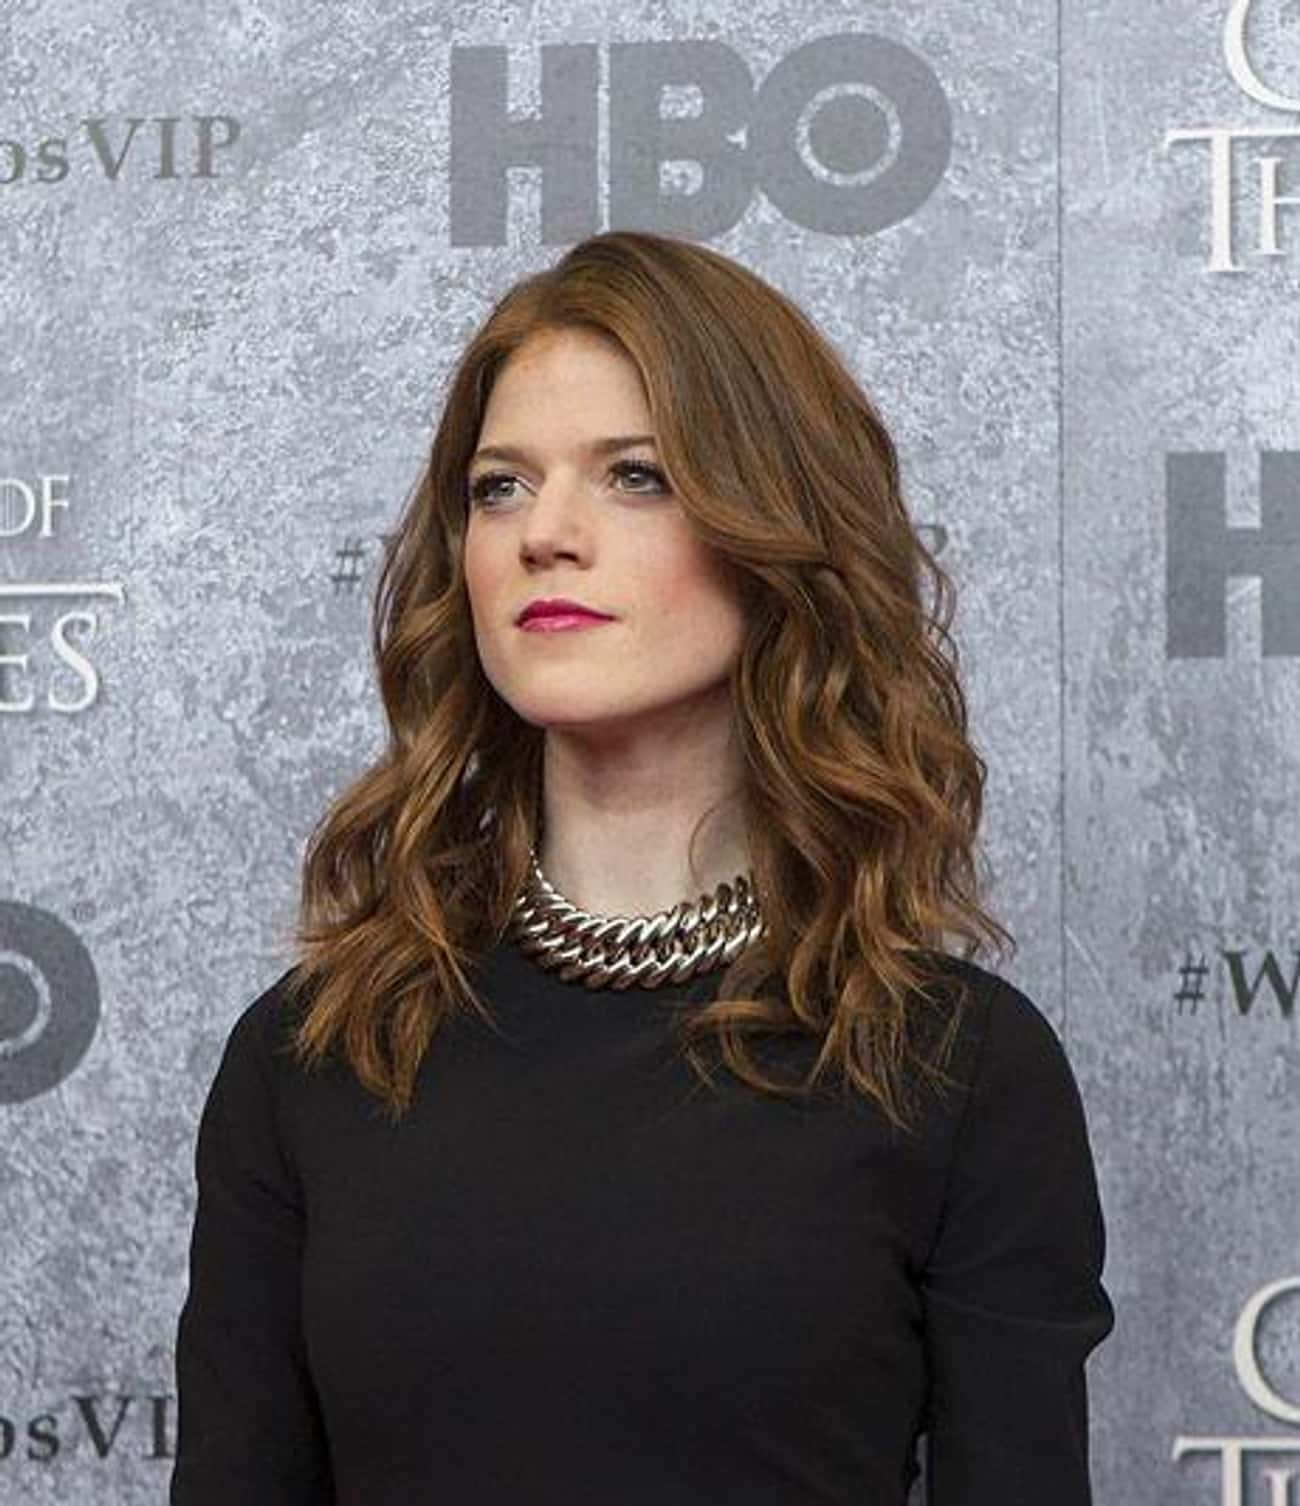 Rose Leslie Was Born in a Real is listed (or ranked) 3 on the list 26 Things You Never Knew About the Women of Game of Thrones